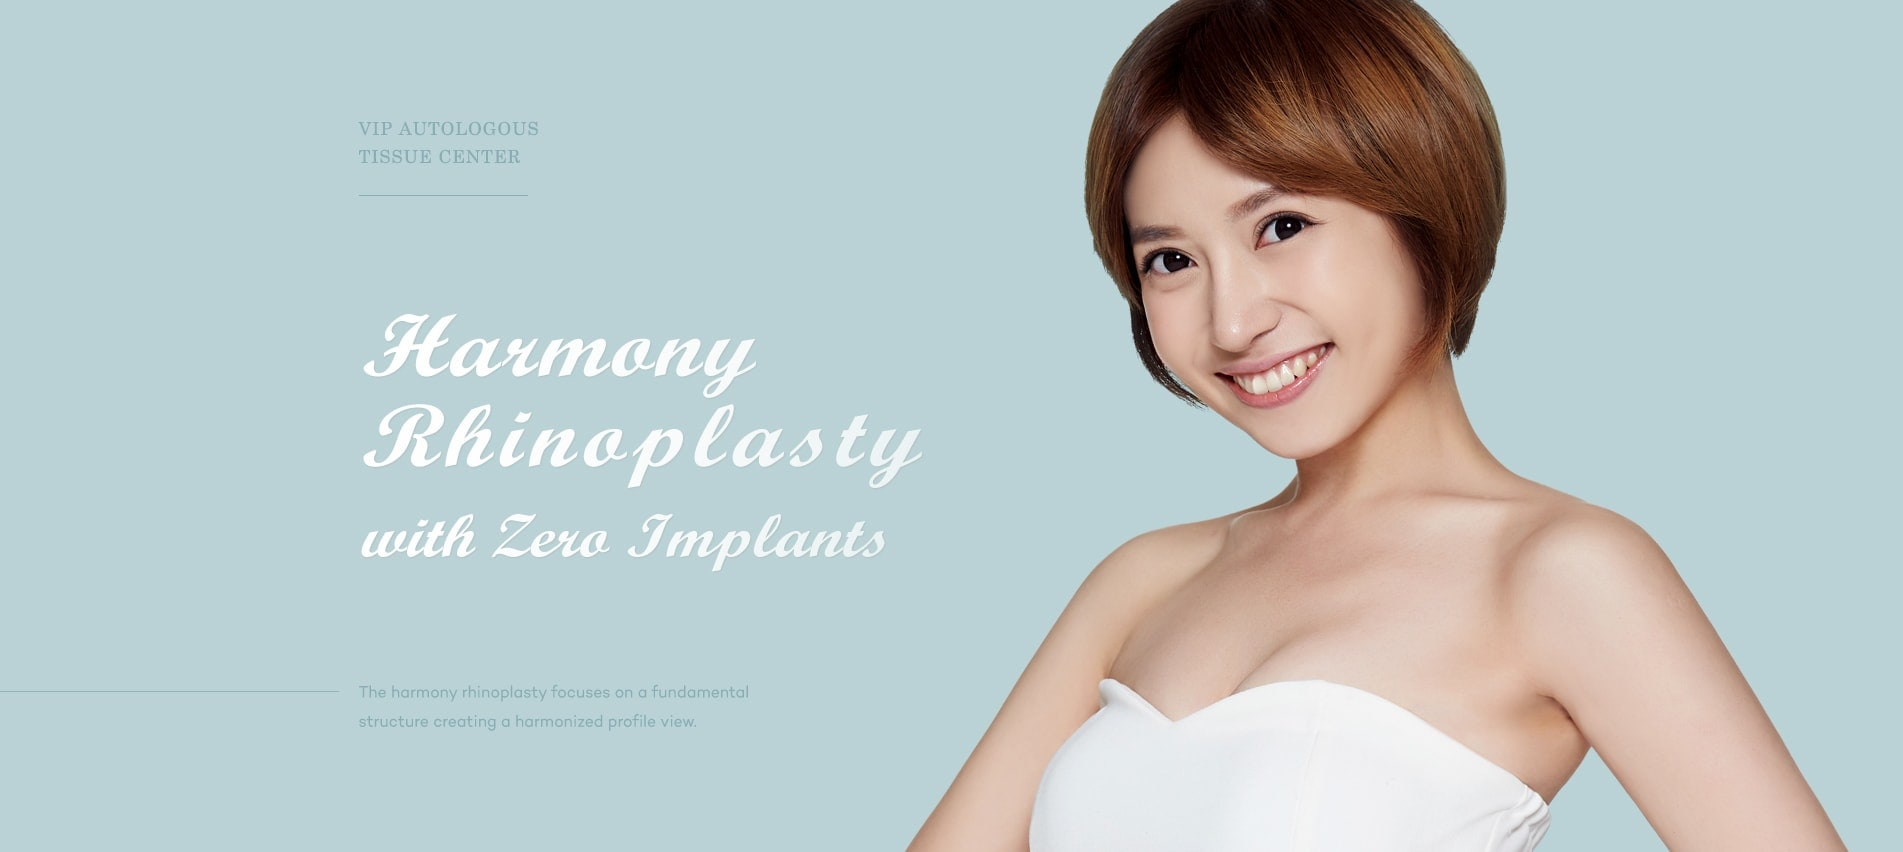 VIP Plastic Surgery Korea | Harmony Face Surgery Expert‎